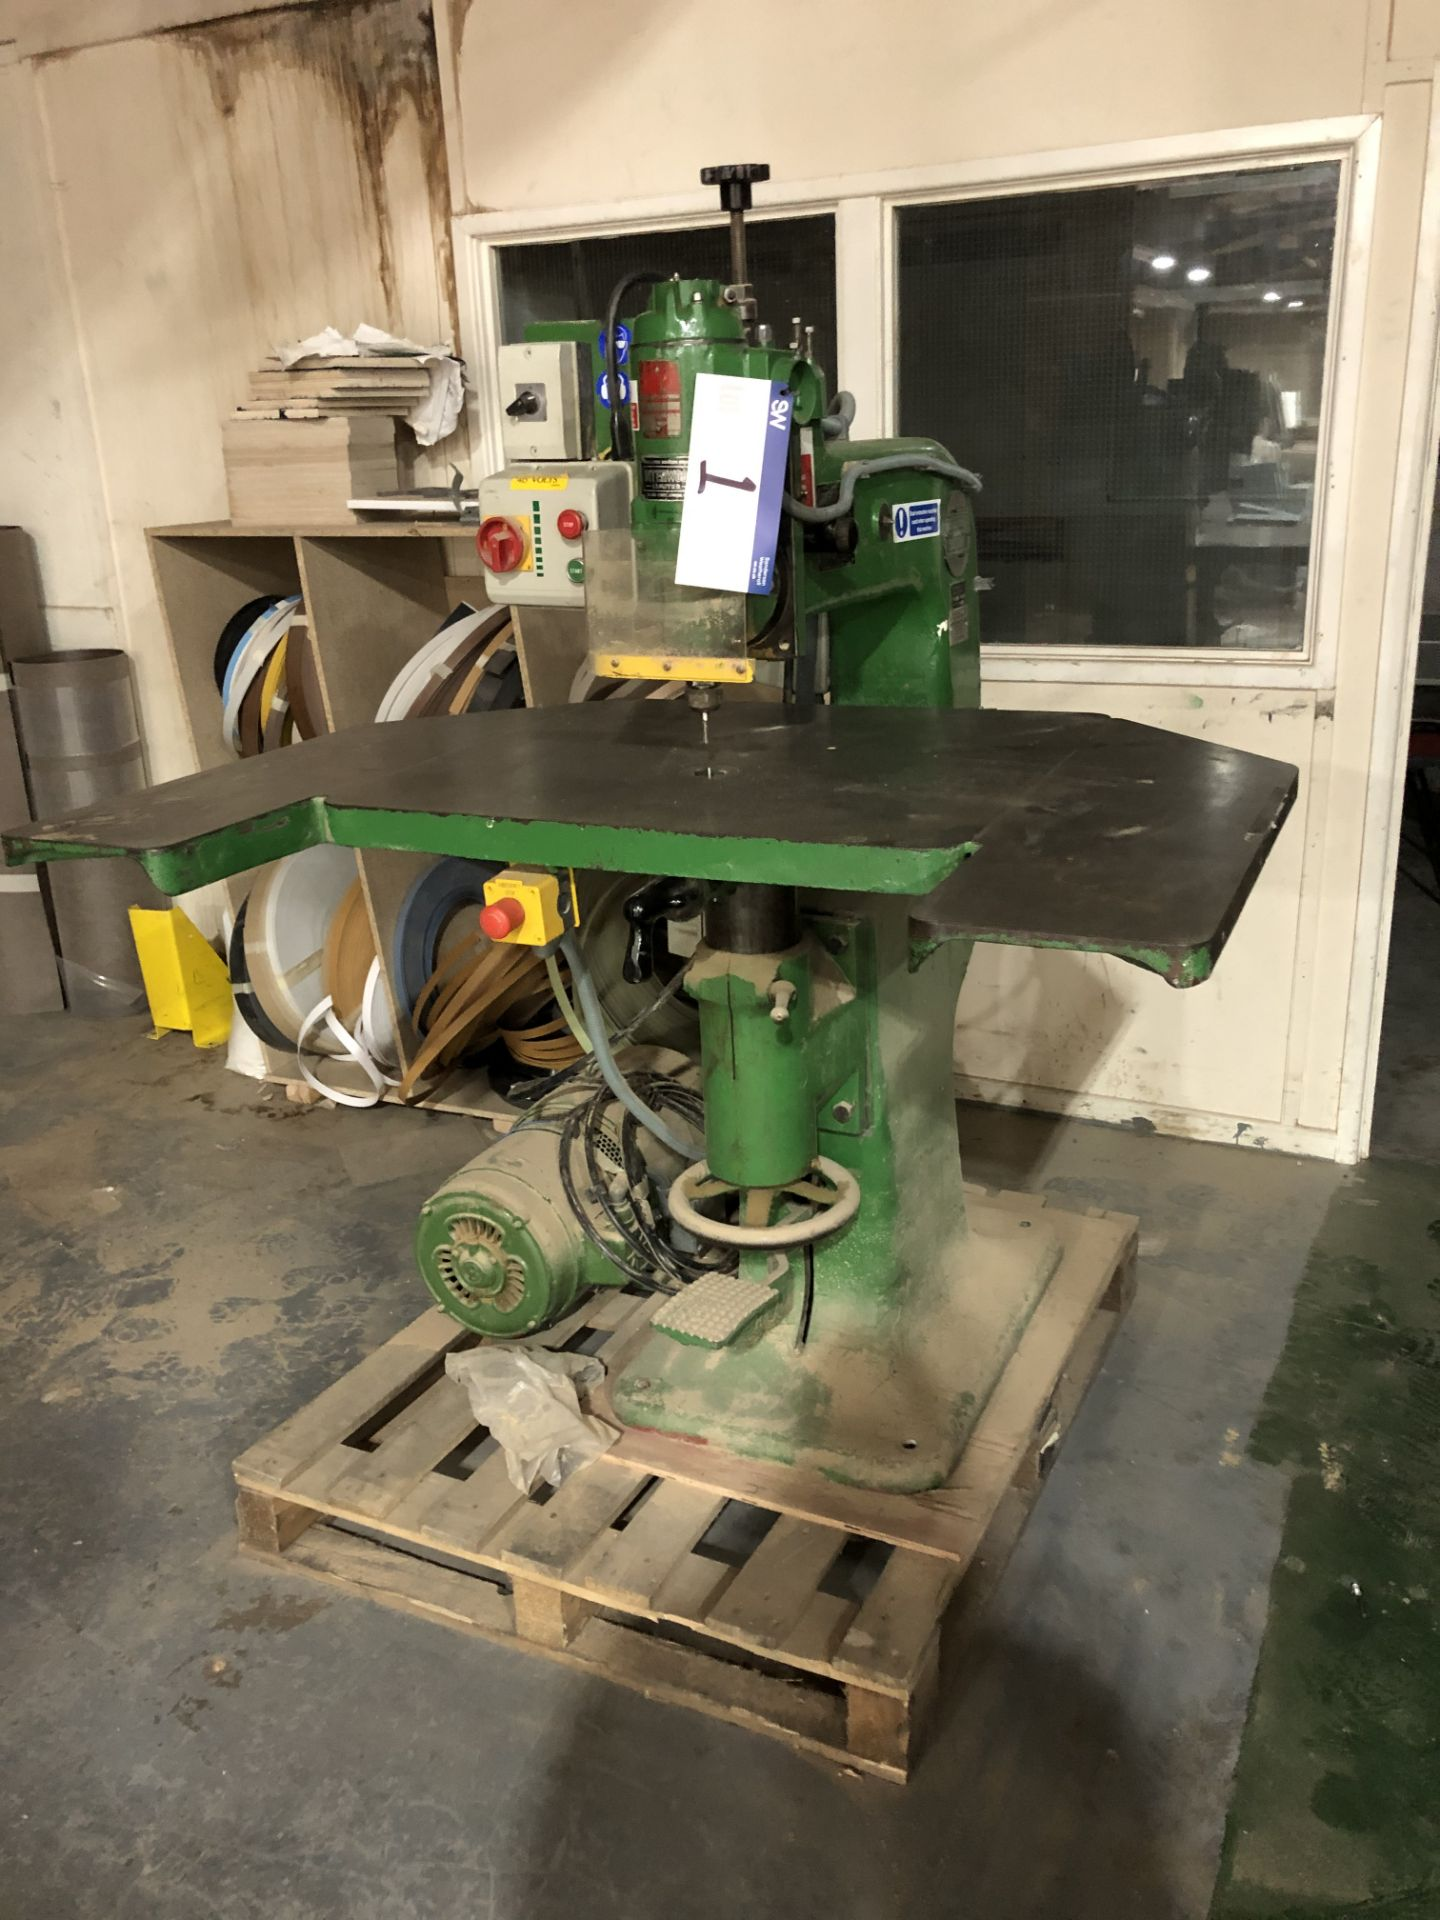 Lot 1 - Interwood OFN High Speed Router. Serial Number 1073. Year of Manufacture 1955. Complete with